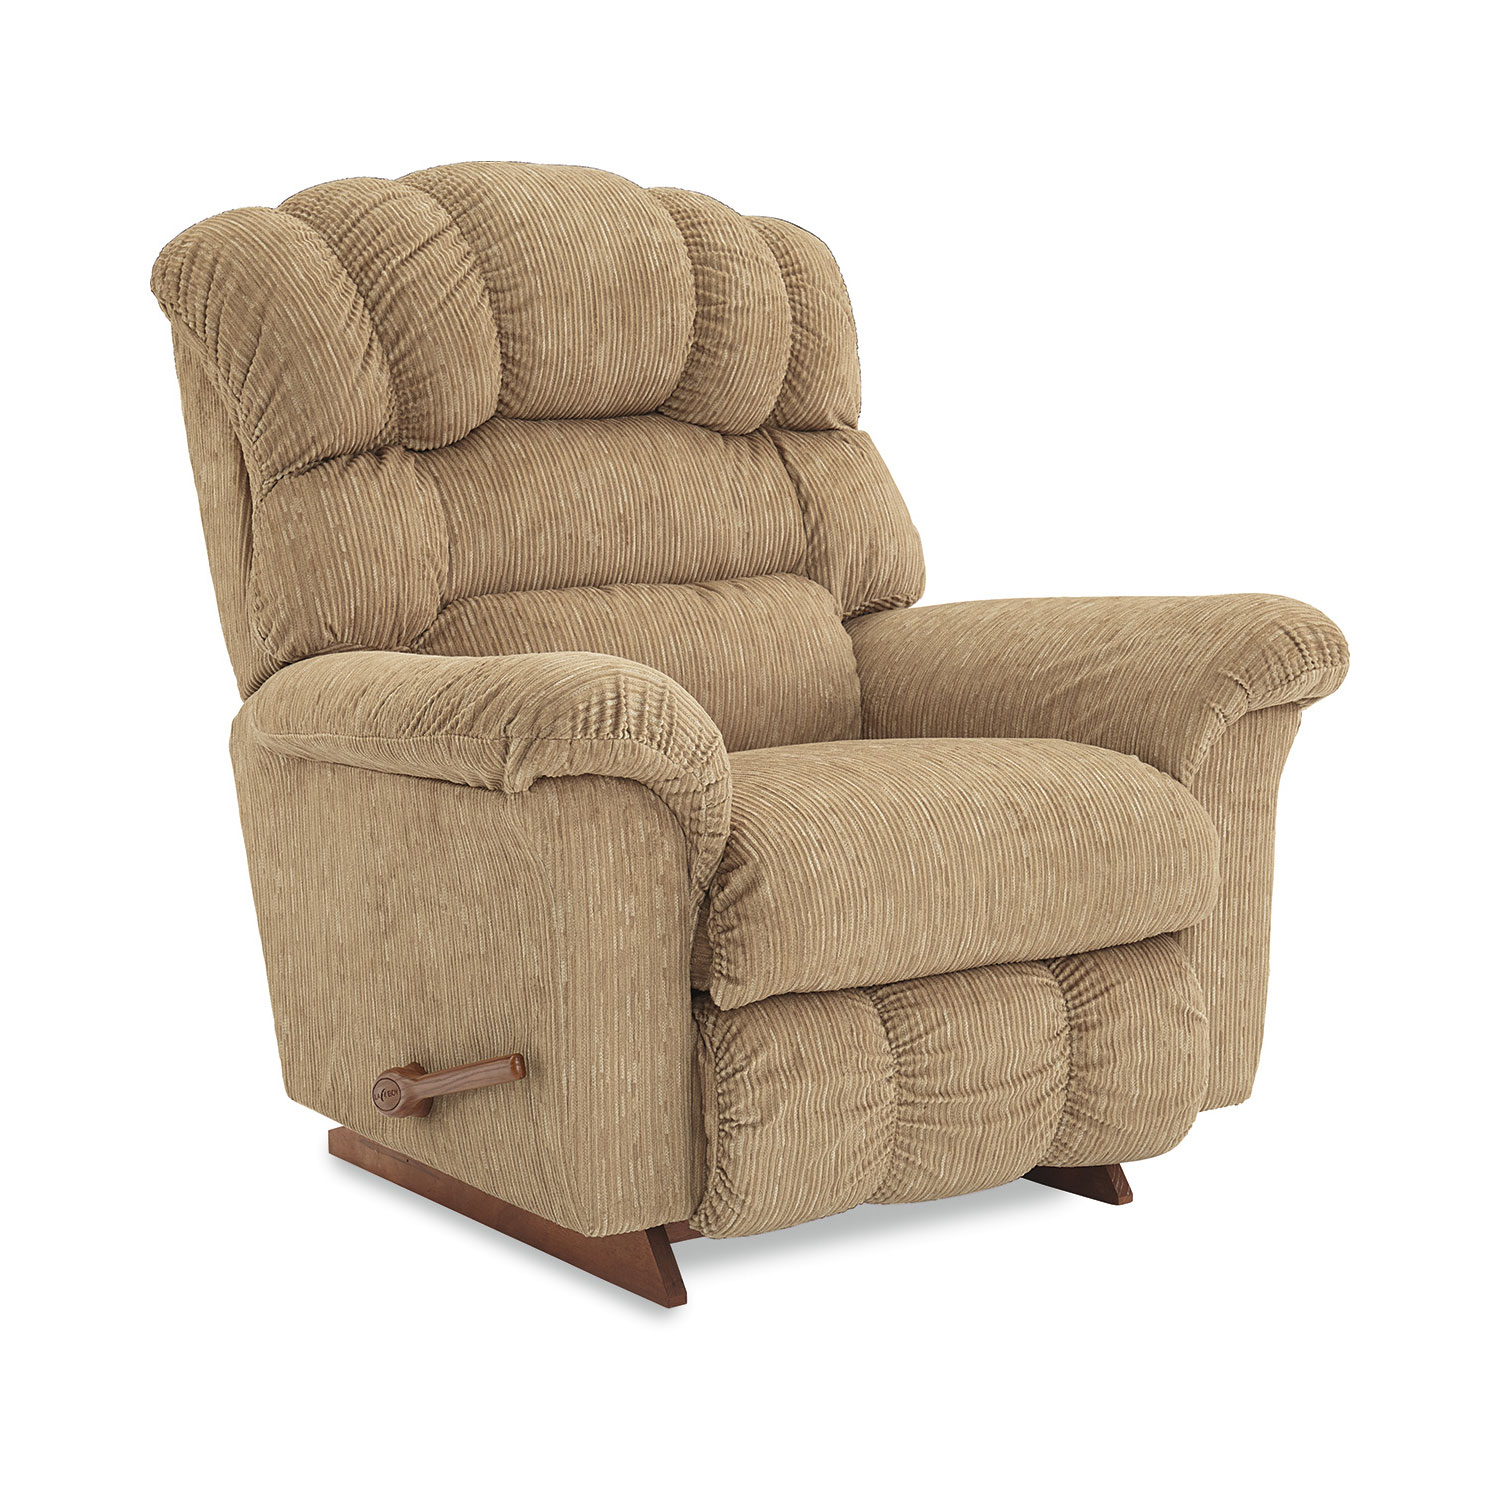 la z boy big man chair malibu pilates assembly instructions lazboy 16 433 crandell wall away recliner hope home